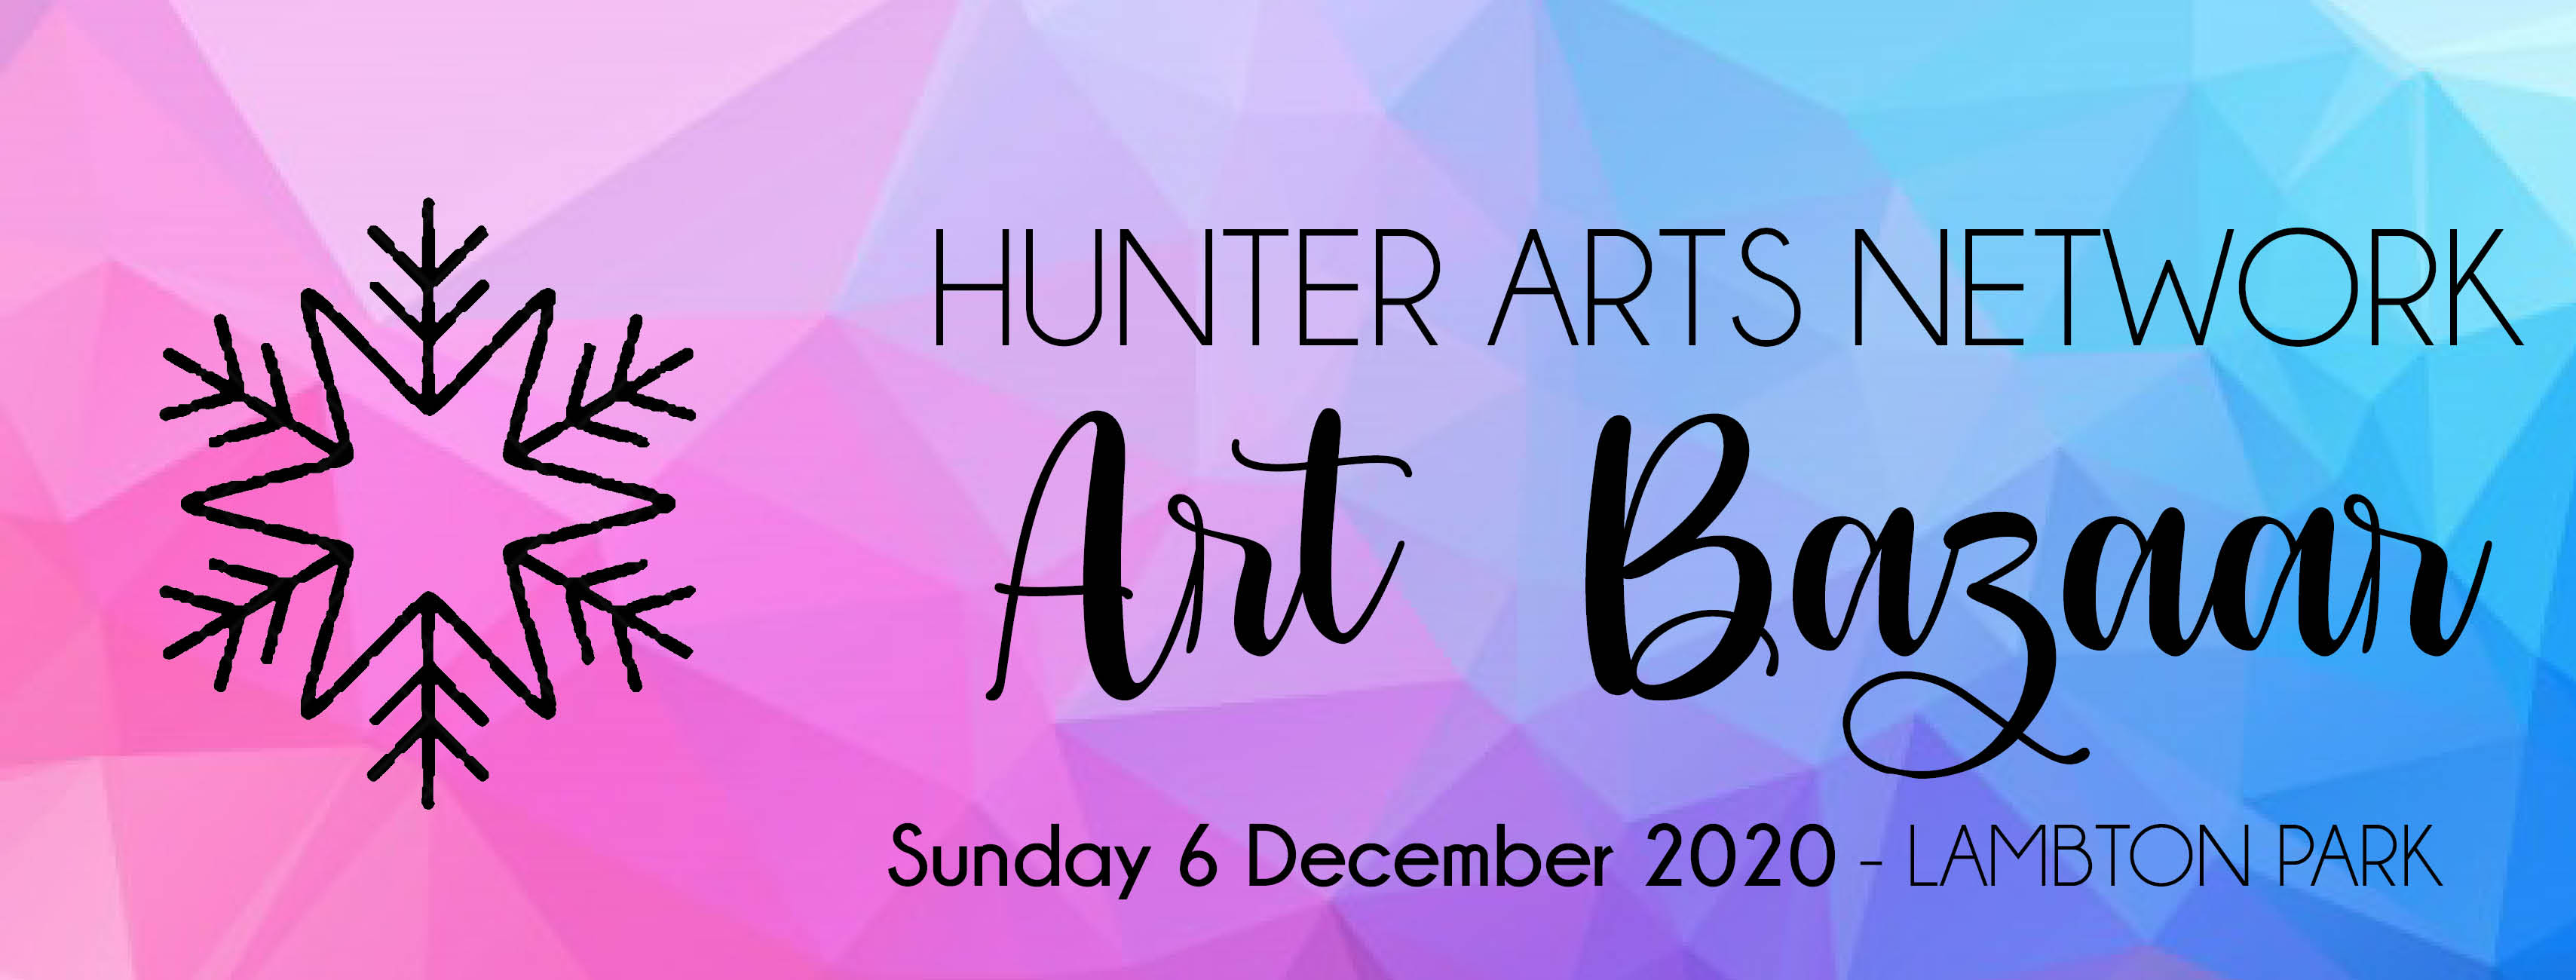 Download artwork for Hunter Arts Network Art Bazaar Sunday 6 December Lambton Park